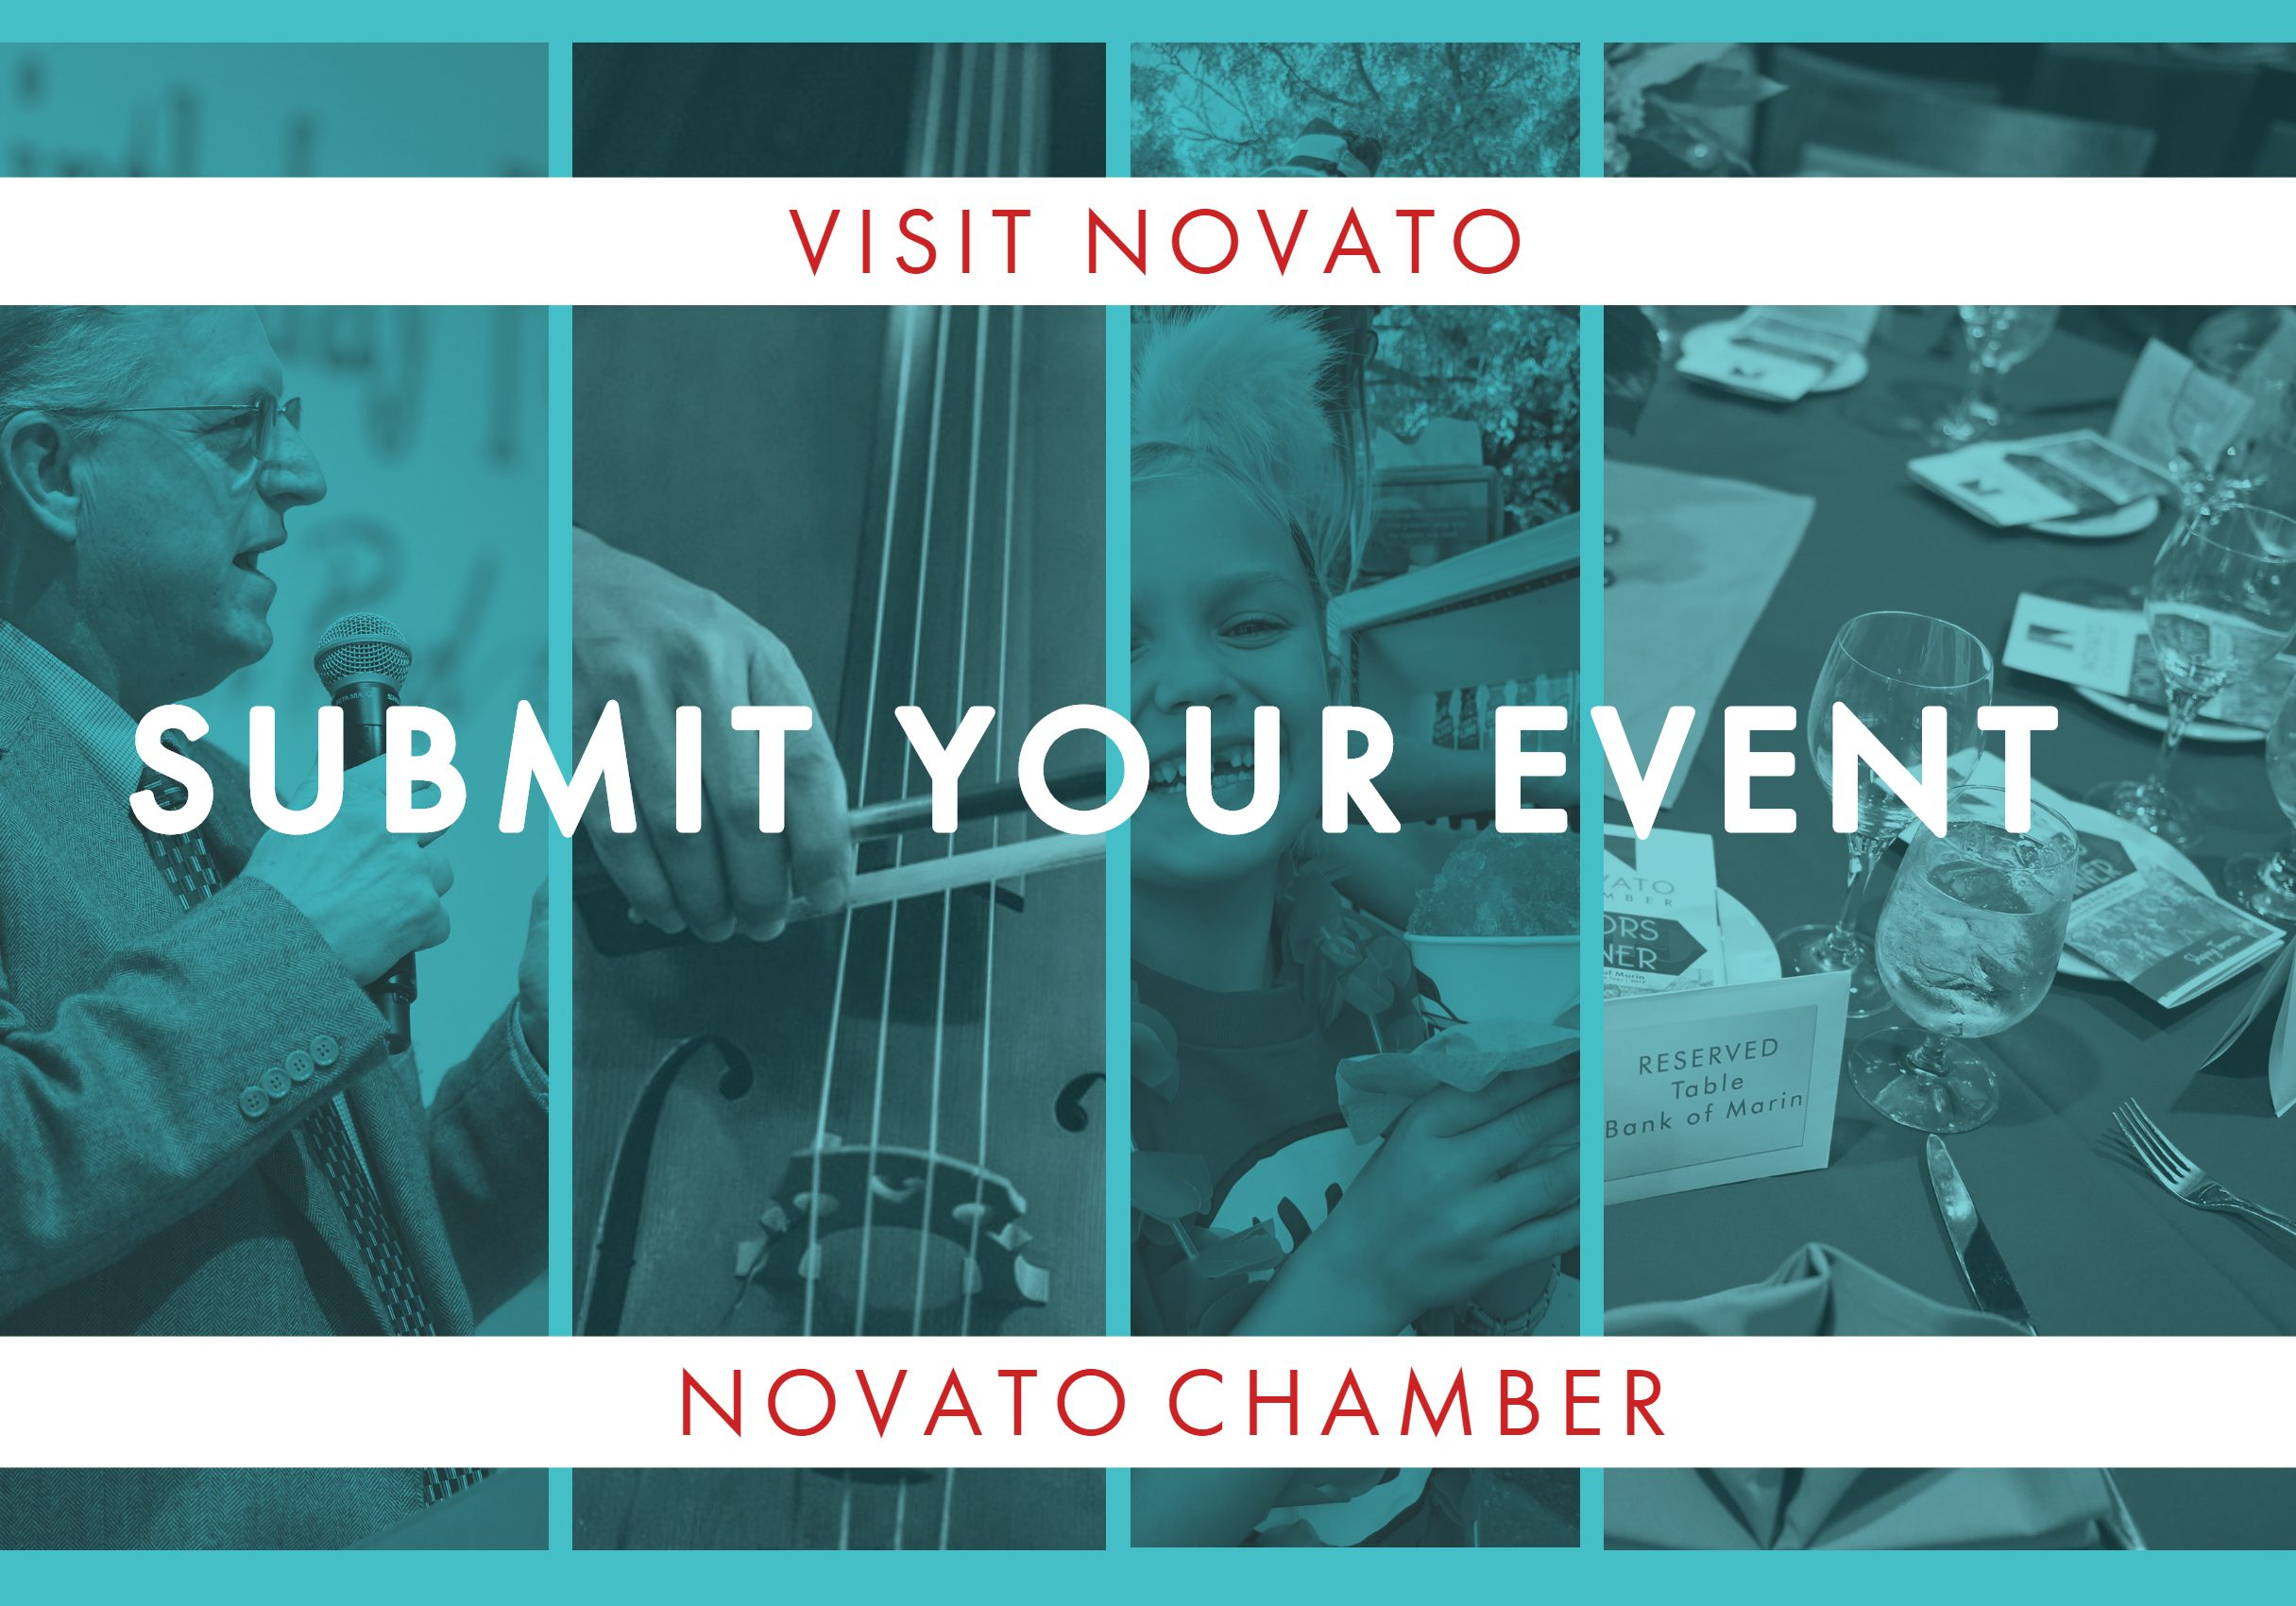 Submit your events Novato Chamber Visit Novato Fundraiser organization busienss practices growth chamber san rafael santa rosa novato chamber metro county marin sonoma donations sales promote free